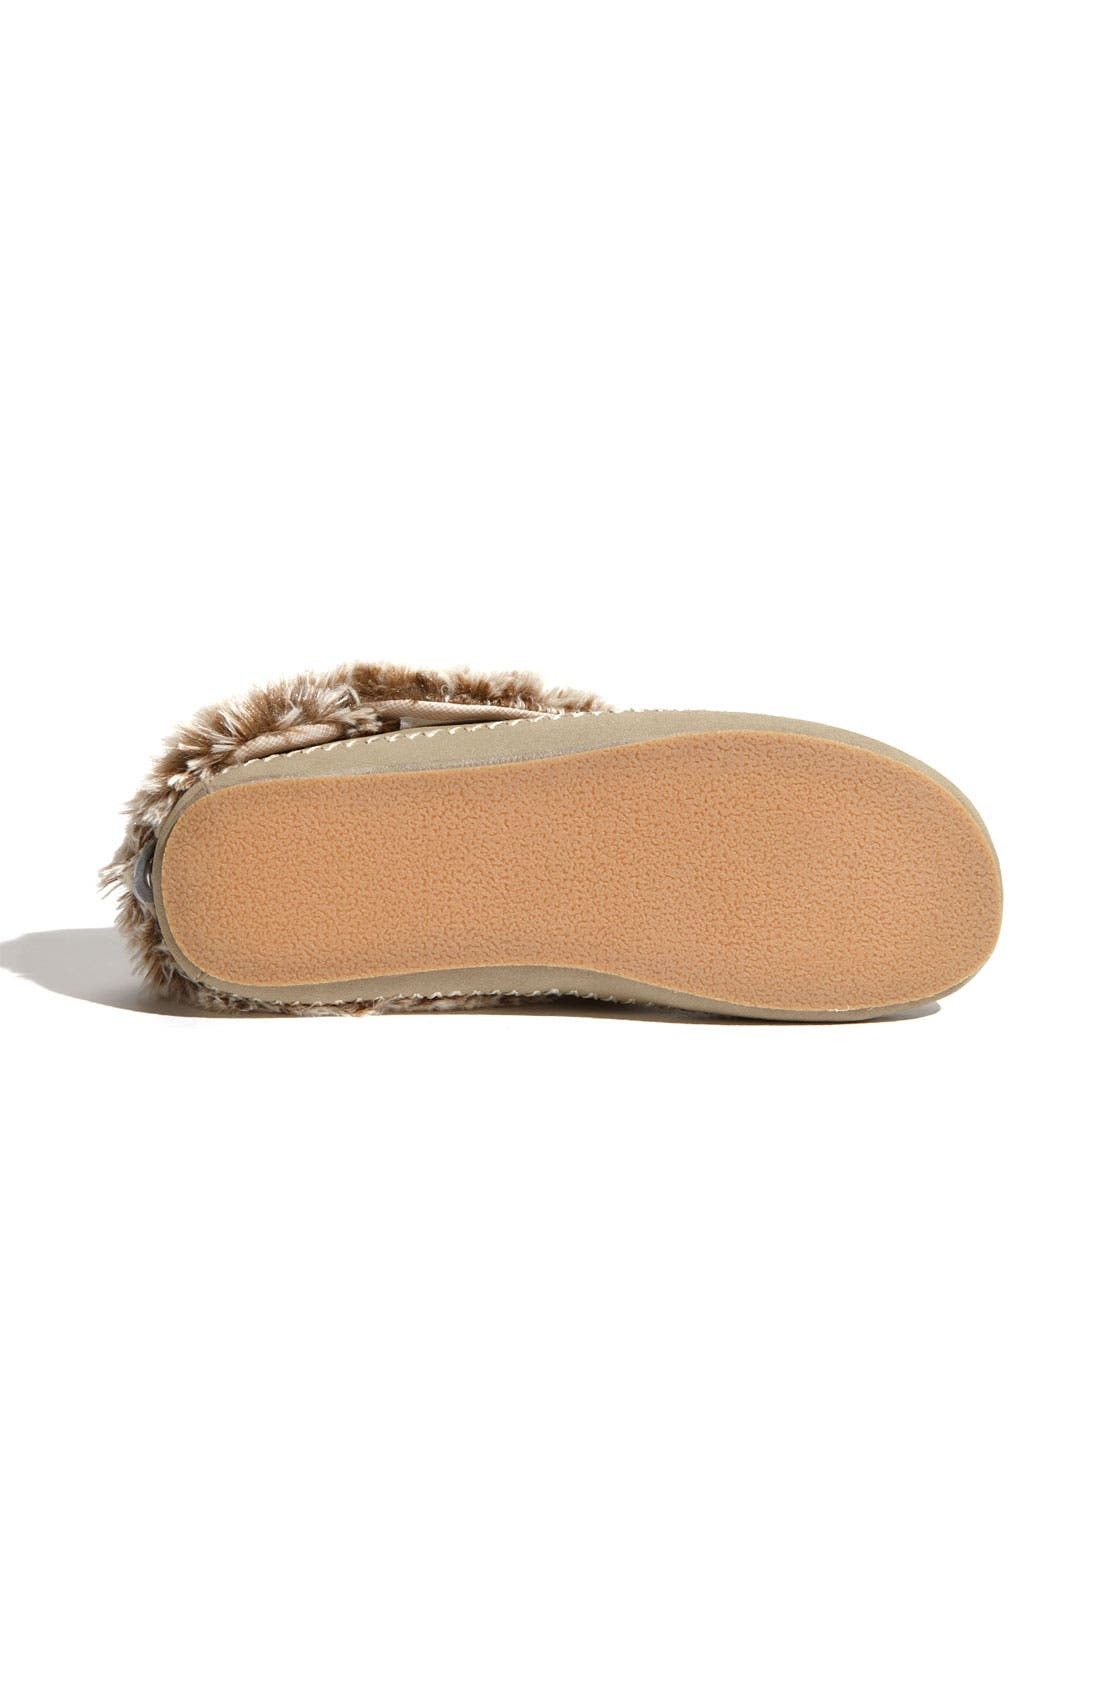 Alternate Image 4  - Freewaters 'Cloudnine' Slipper